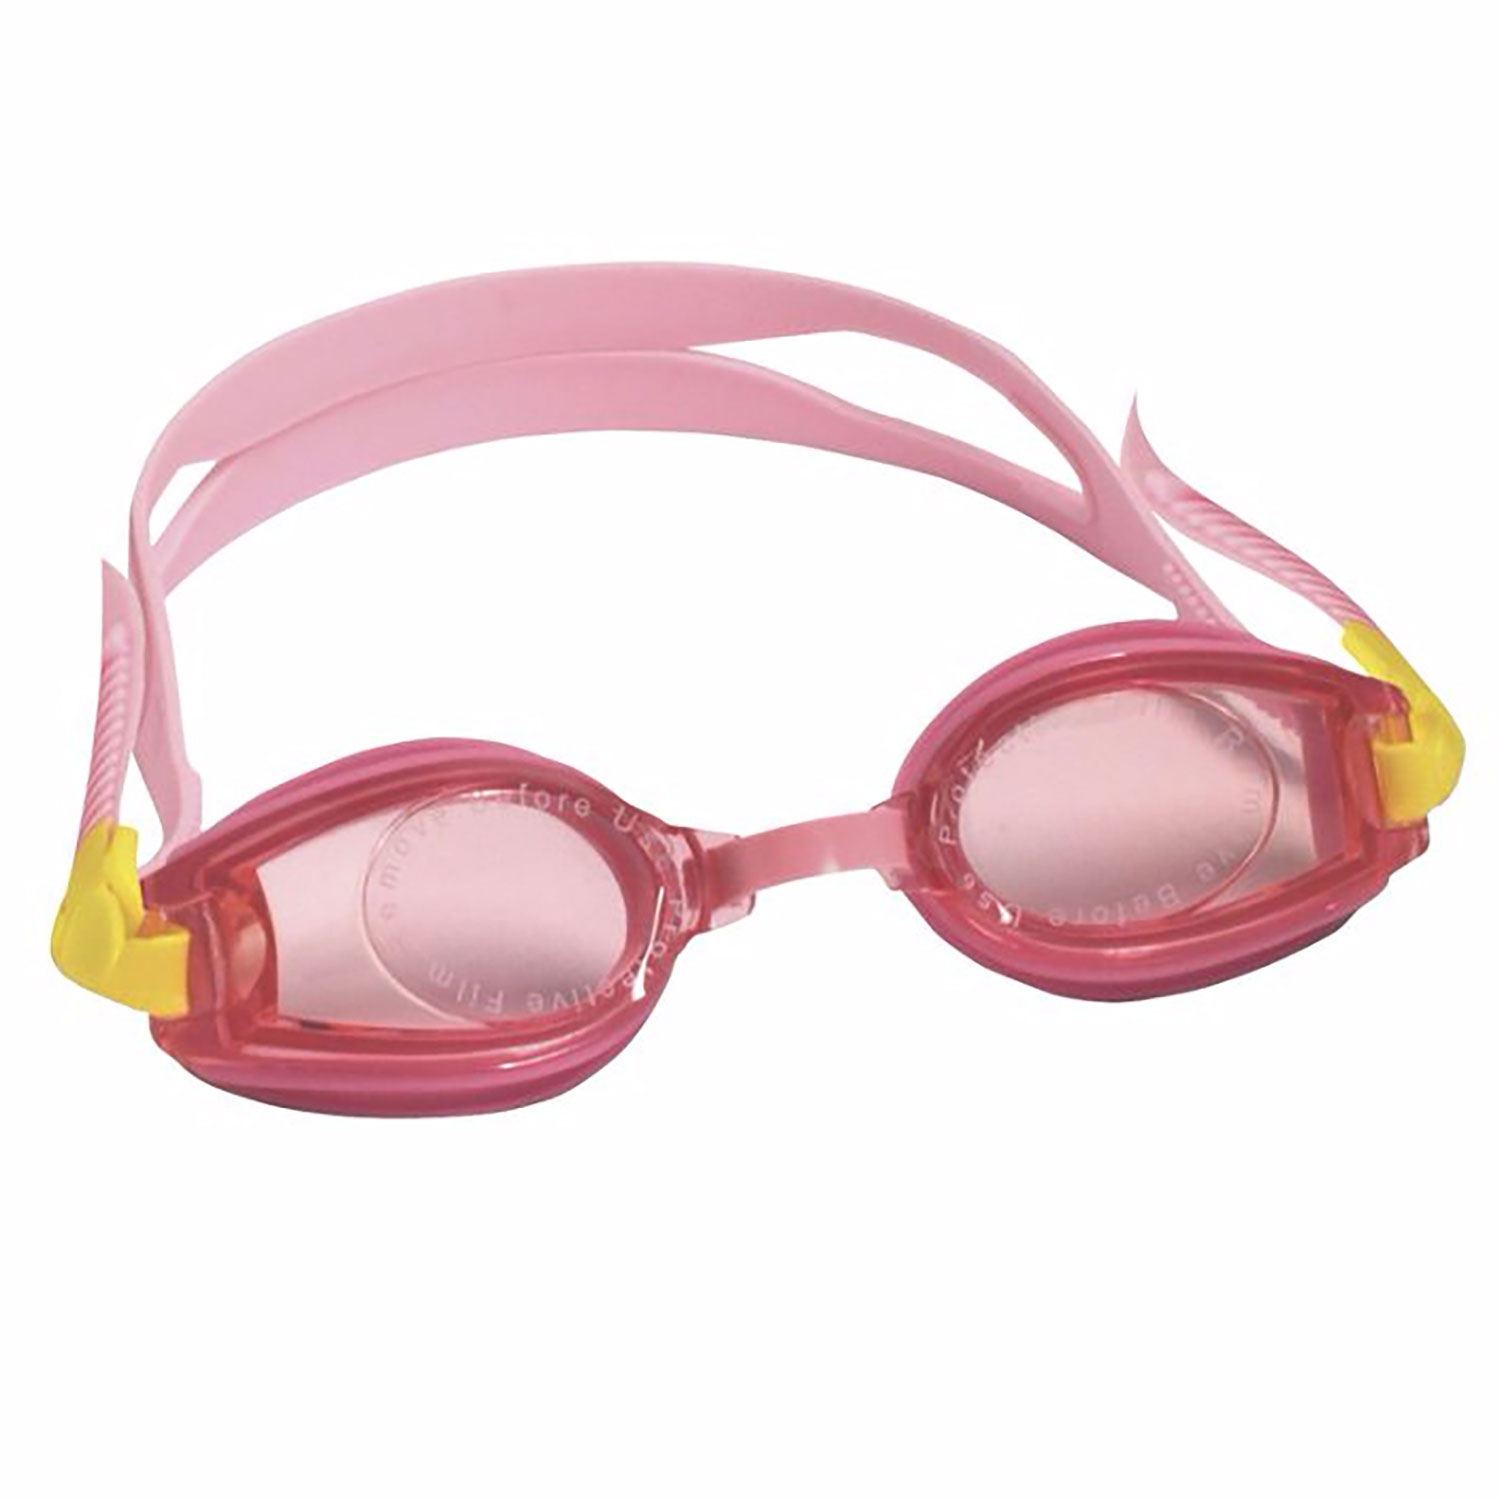 Kids Pink Swim Goggles Anti-Fog, UV Protection Toddler Girls Ages 2-5 by One Step Ahead